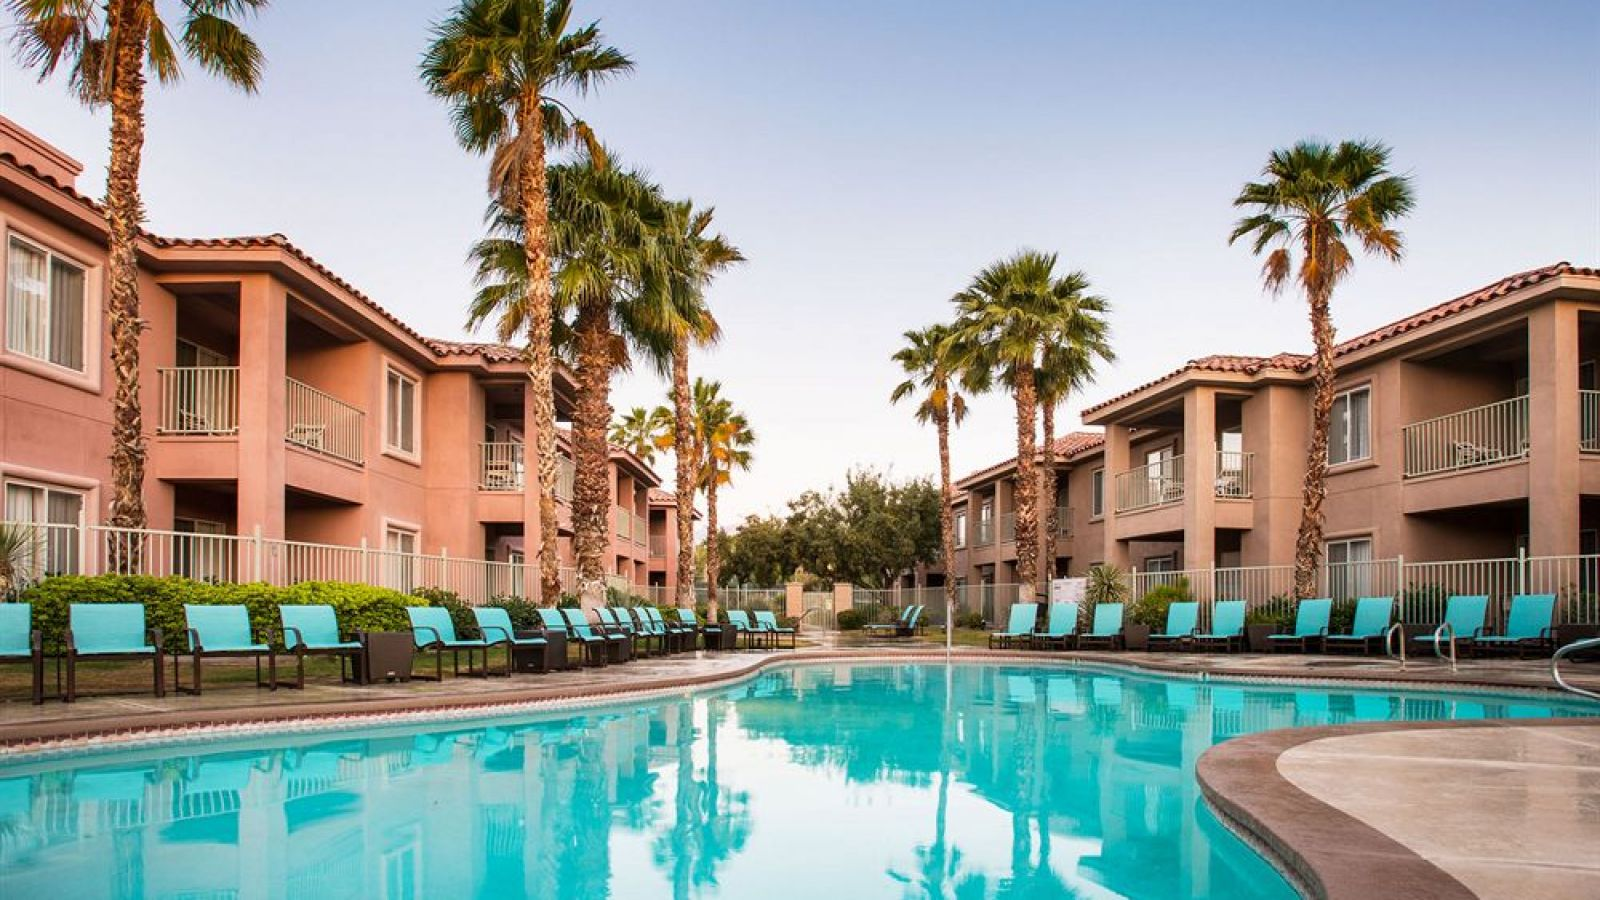 Residence Inn Palm Desert - Palm Springs golf packages